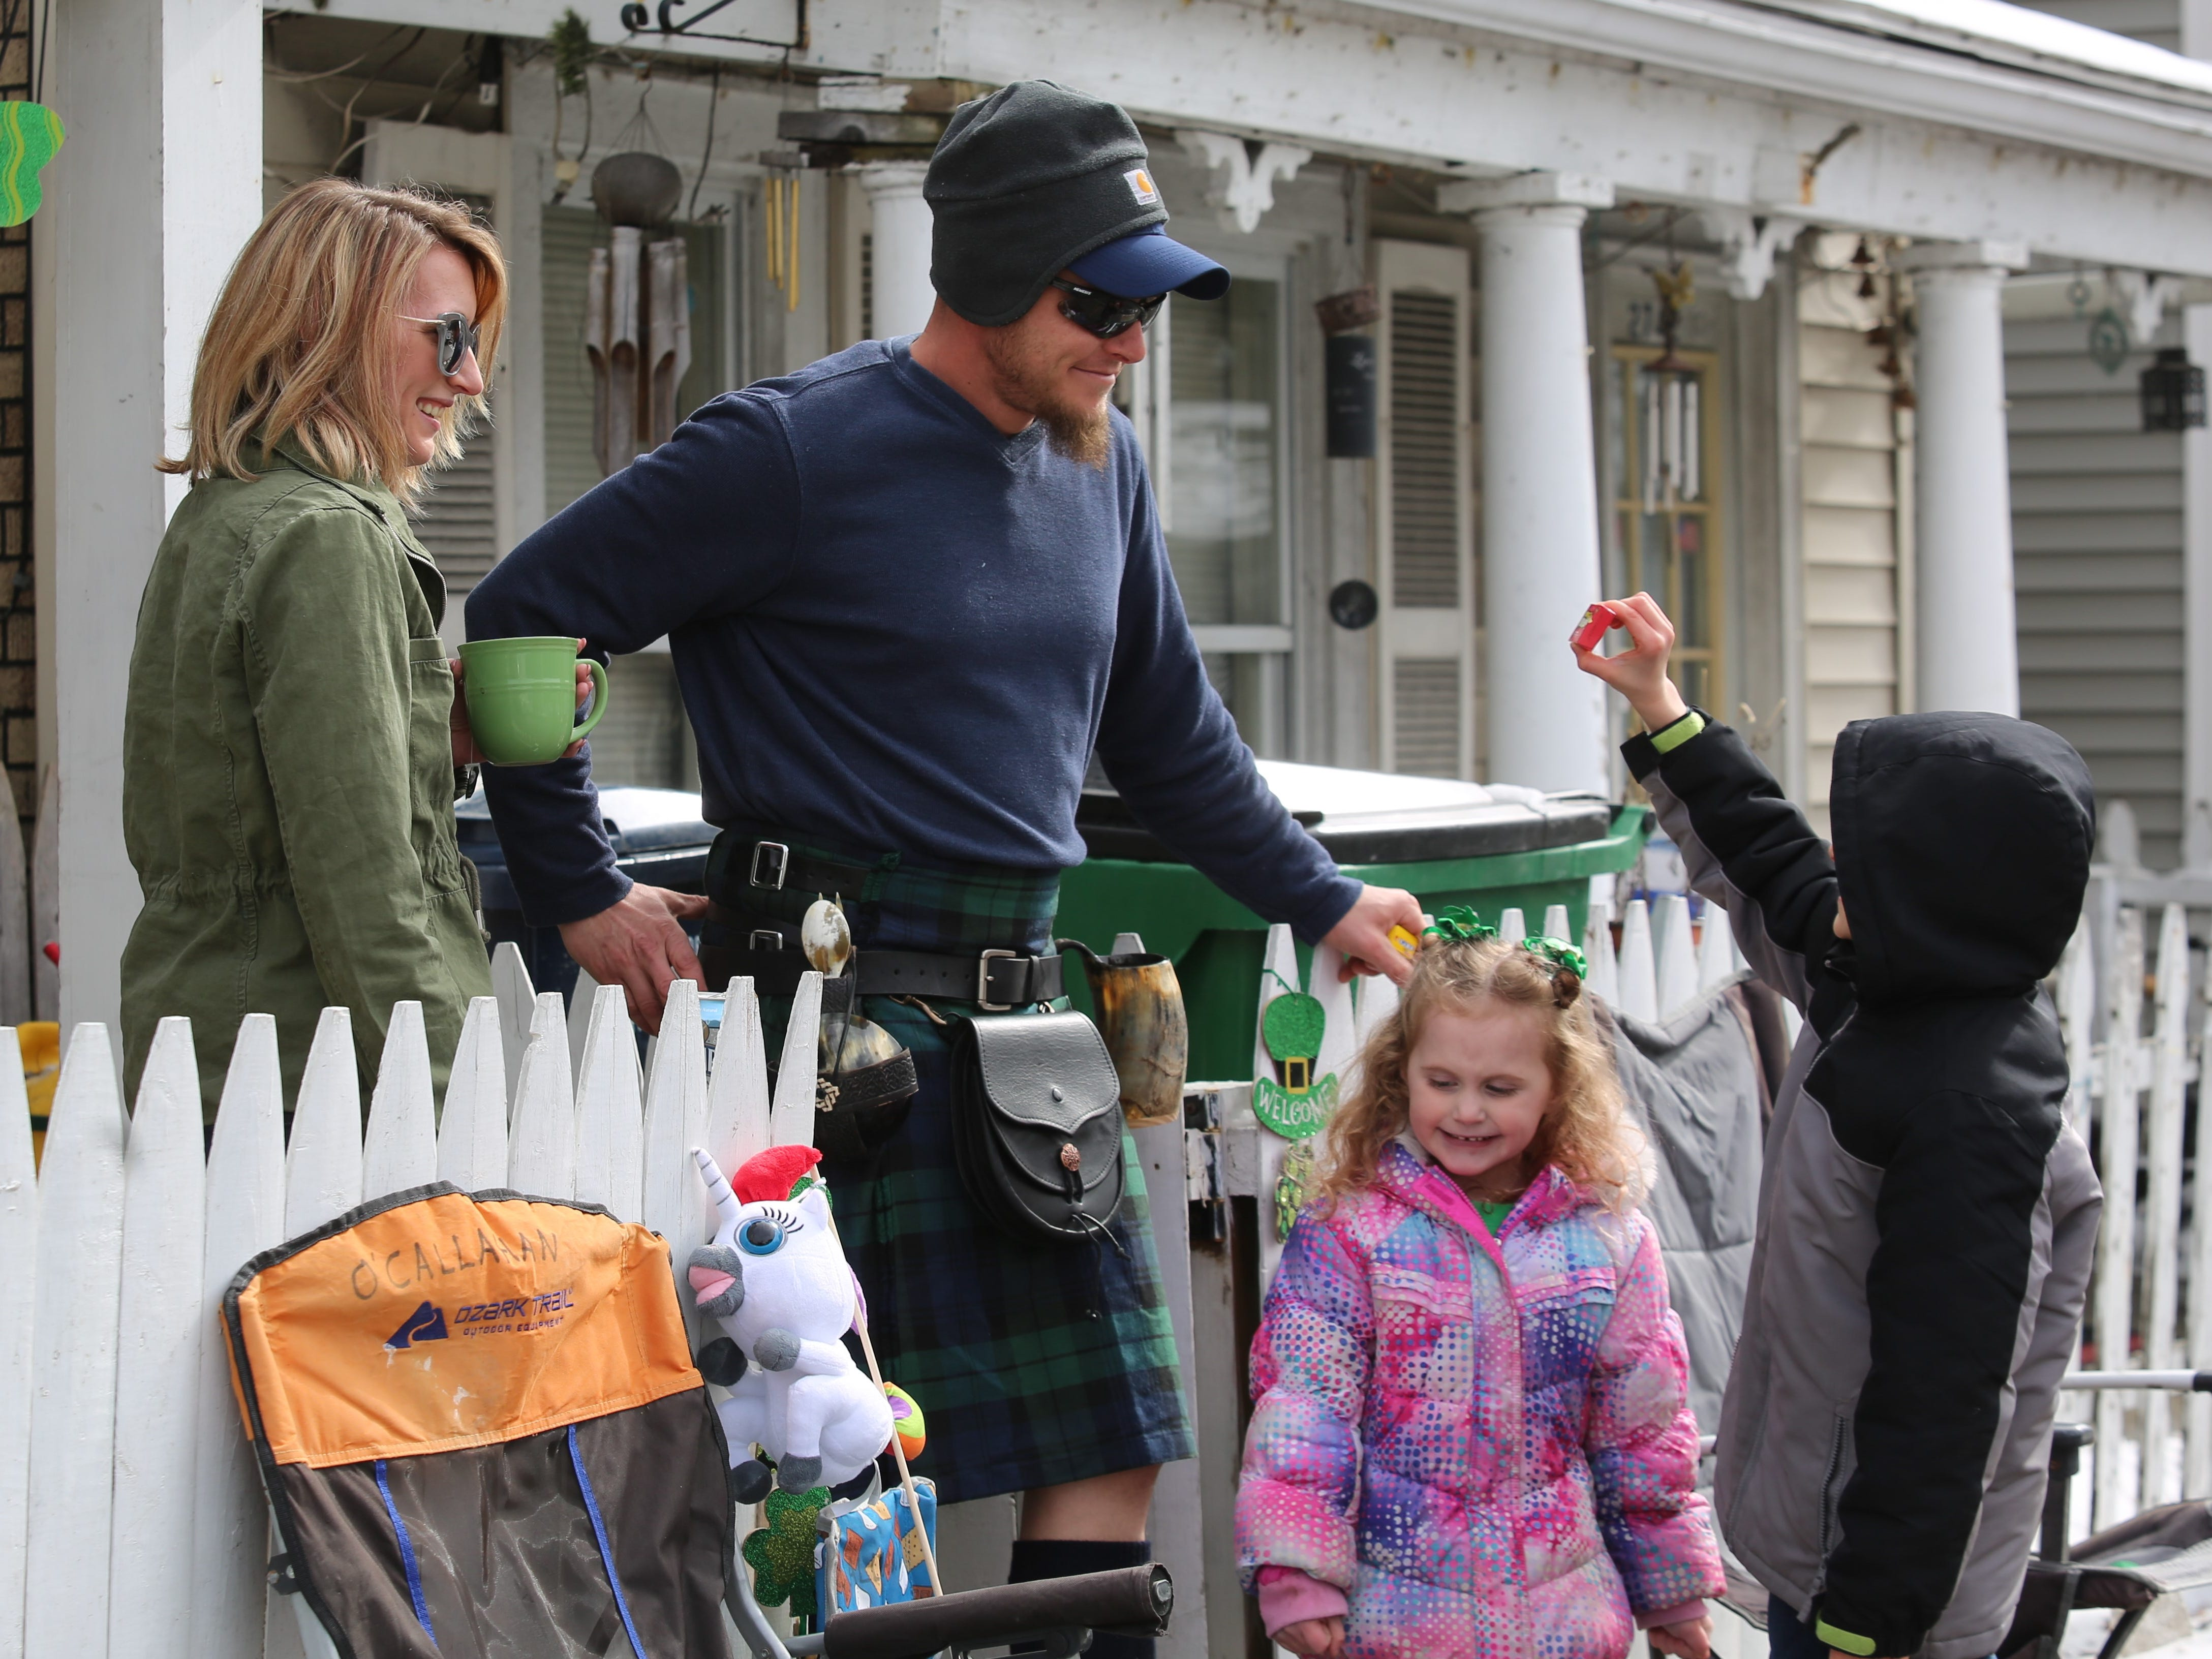 Heather O'Callahan (left) and Dan Callahan (left center) look on as their son, Danny O'Callahan (right), 8, shows off his candy and daughter, Lilly O'Callahan (right center), 5, smiles during the 24th annual Dutchess County St. Patrick's Day Parade on Saturday. Their home is right along the parade route, so each year they come outside to watch.